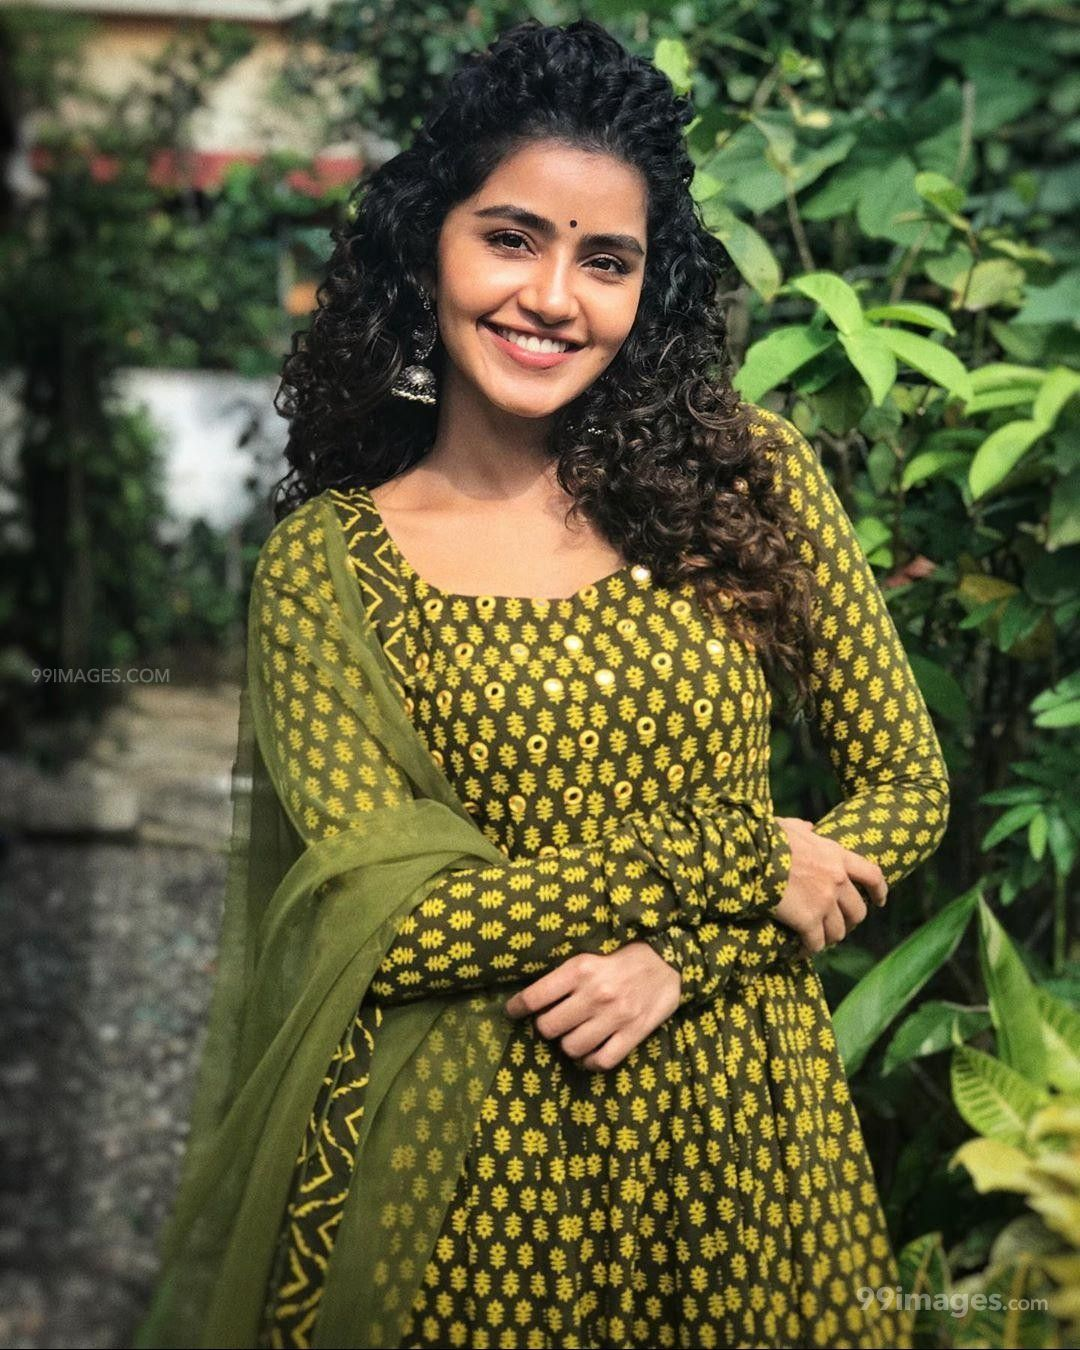 Anupama Parameswaran HD Wallpapers (Desktop Background / Android / iPhone) (1080p, 4k) (197357) - Anupama Parameswaran